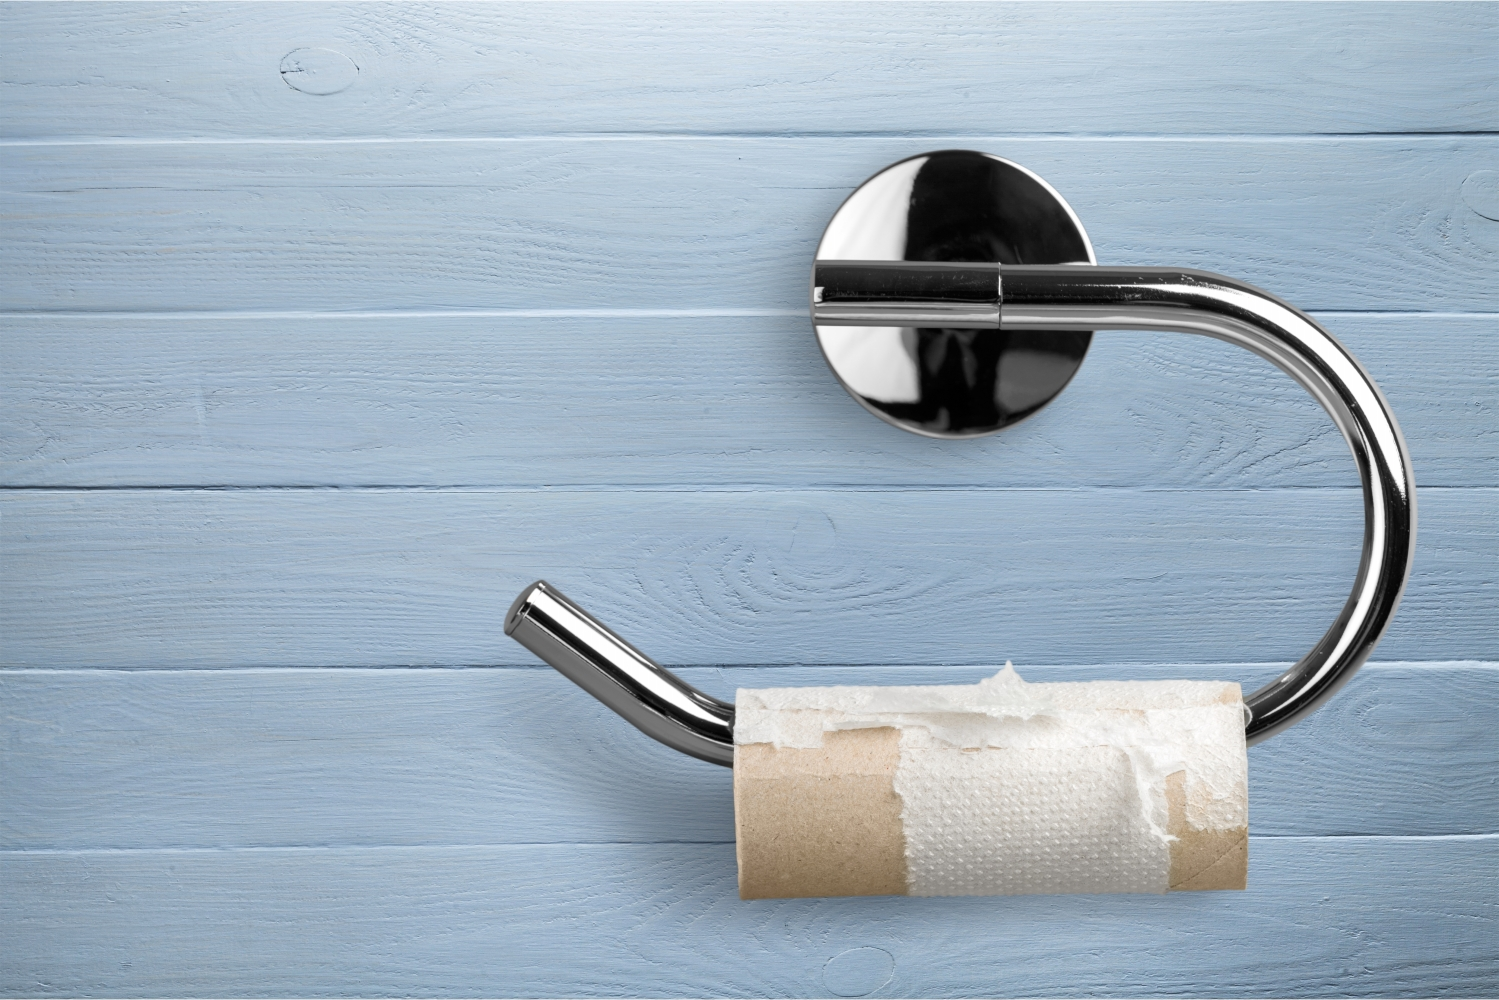 Here An Efficient Way To Use Each Roll Of Toilet Paper